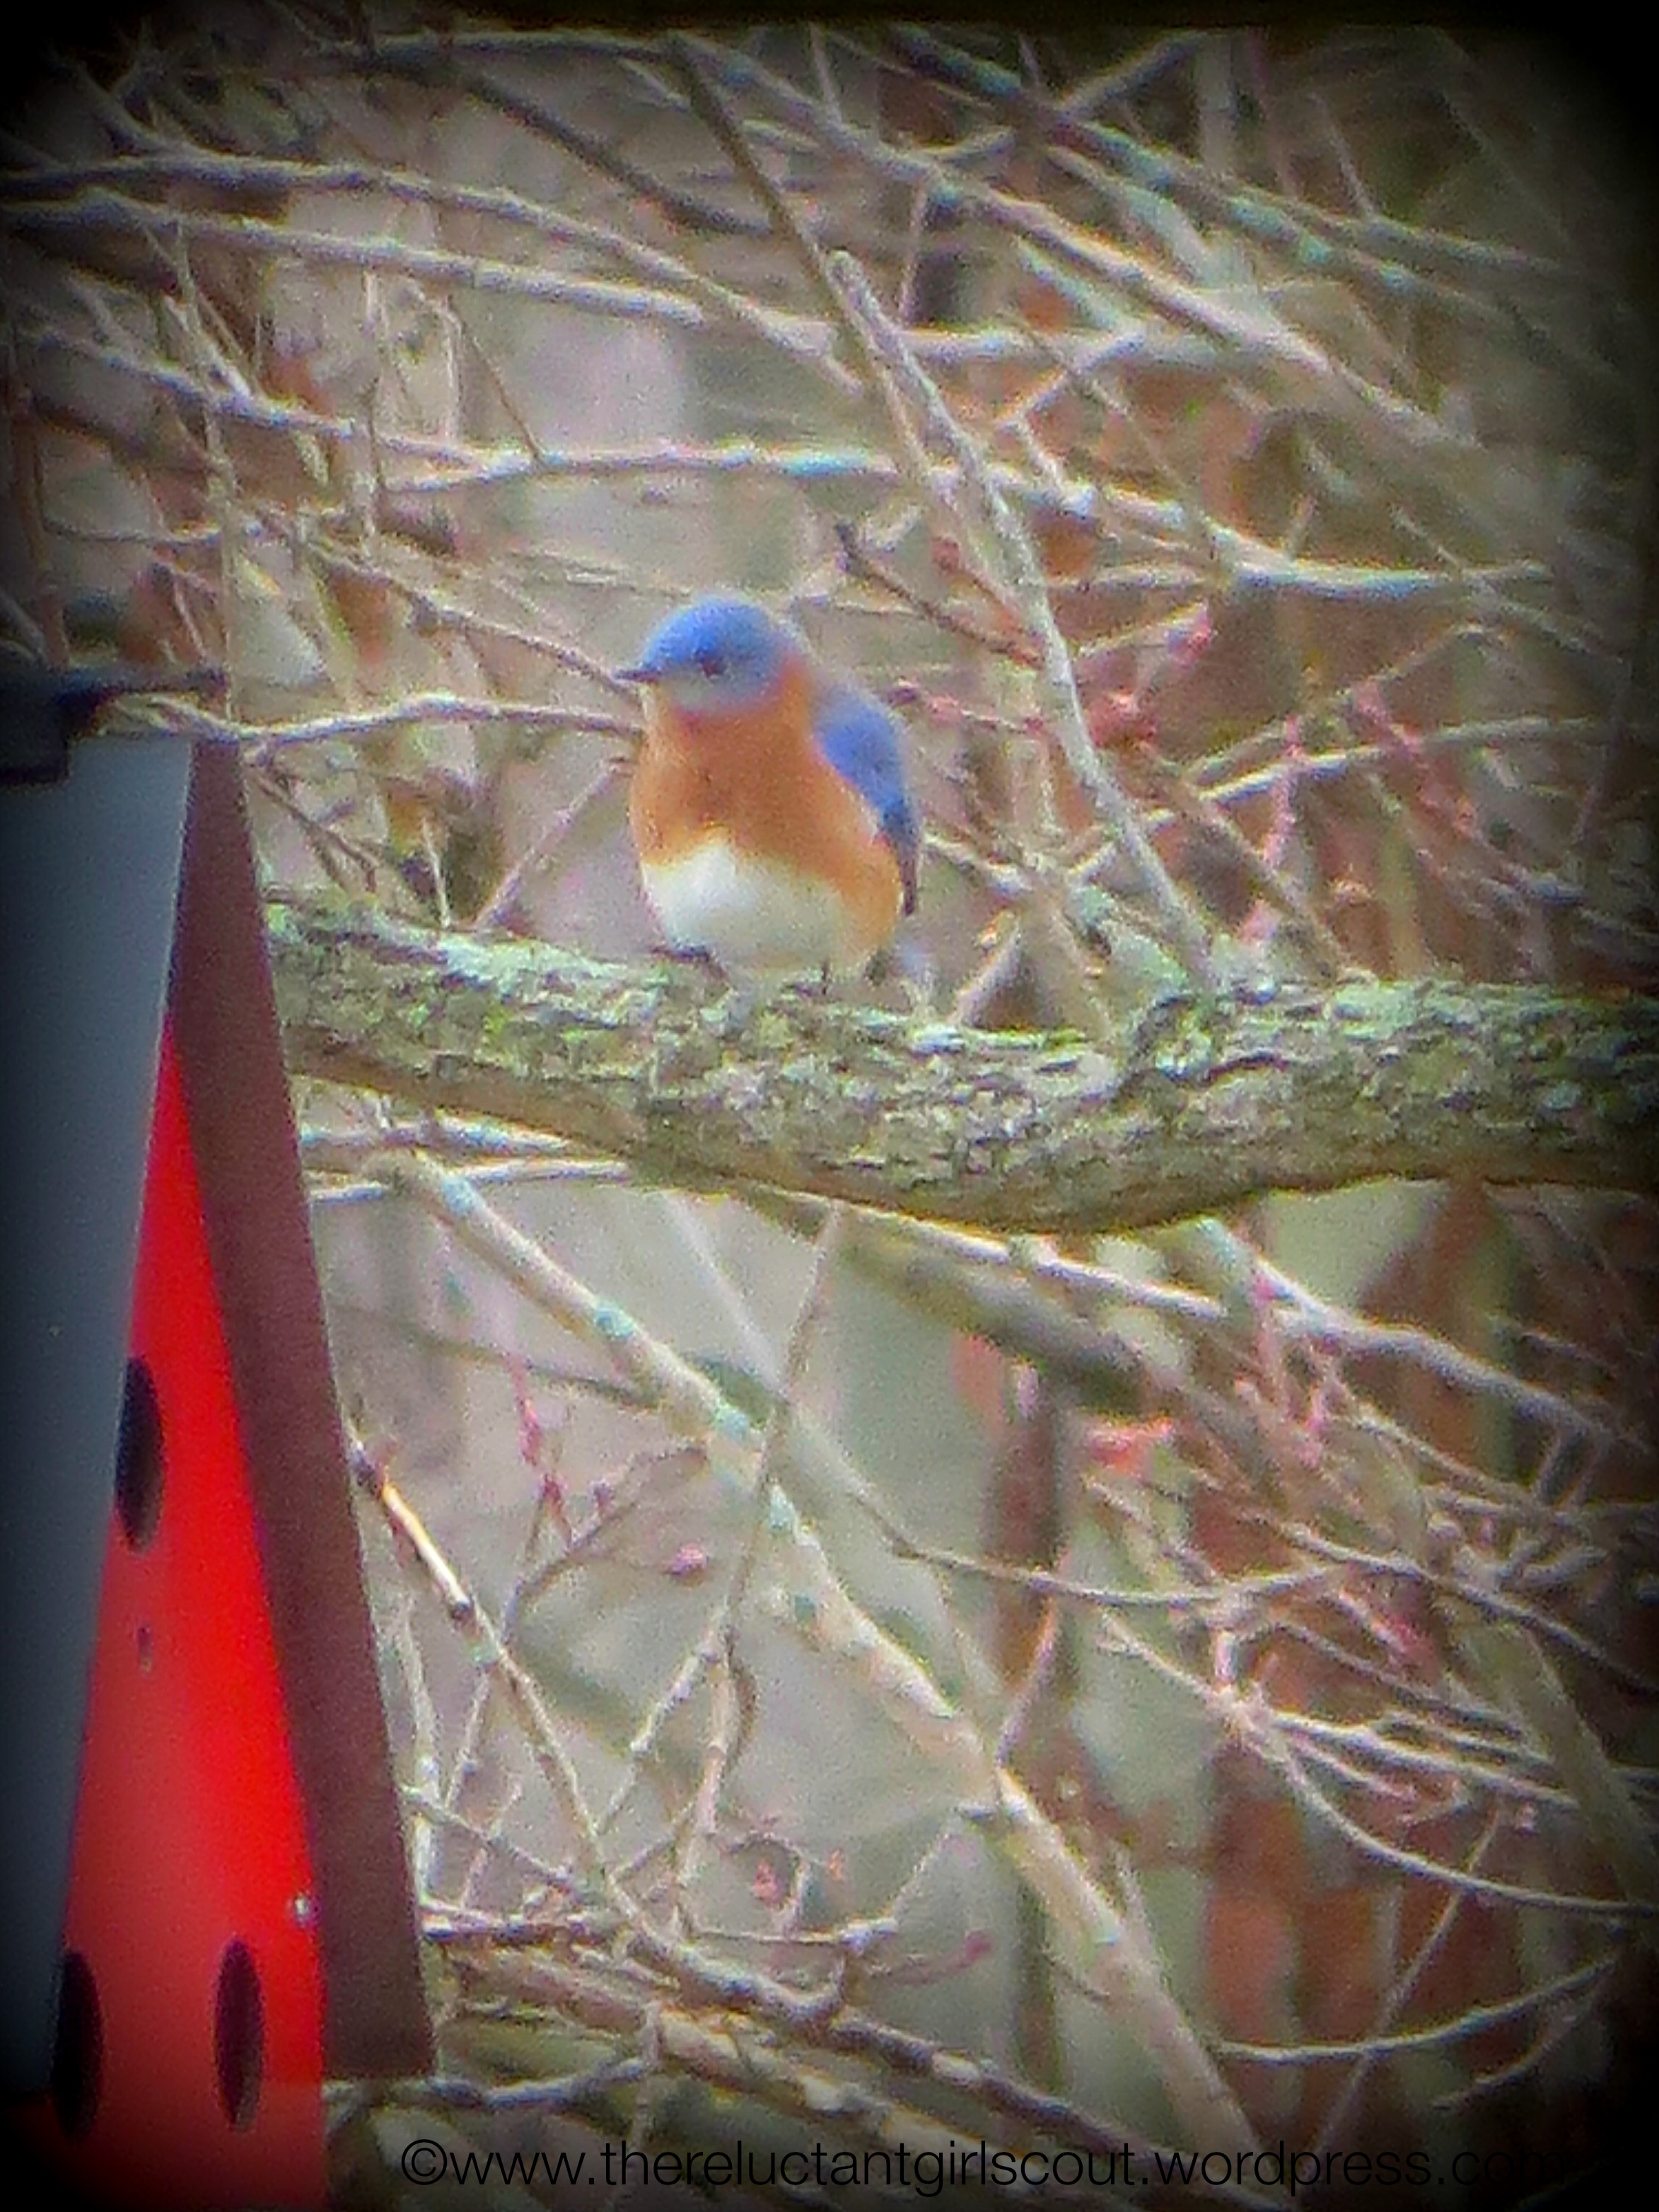 Bluebird considering a move to East Central Indiana.